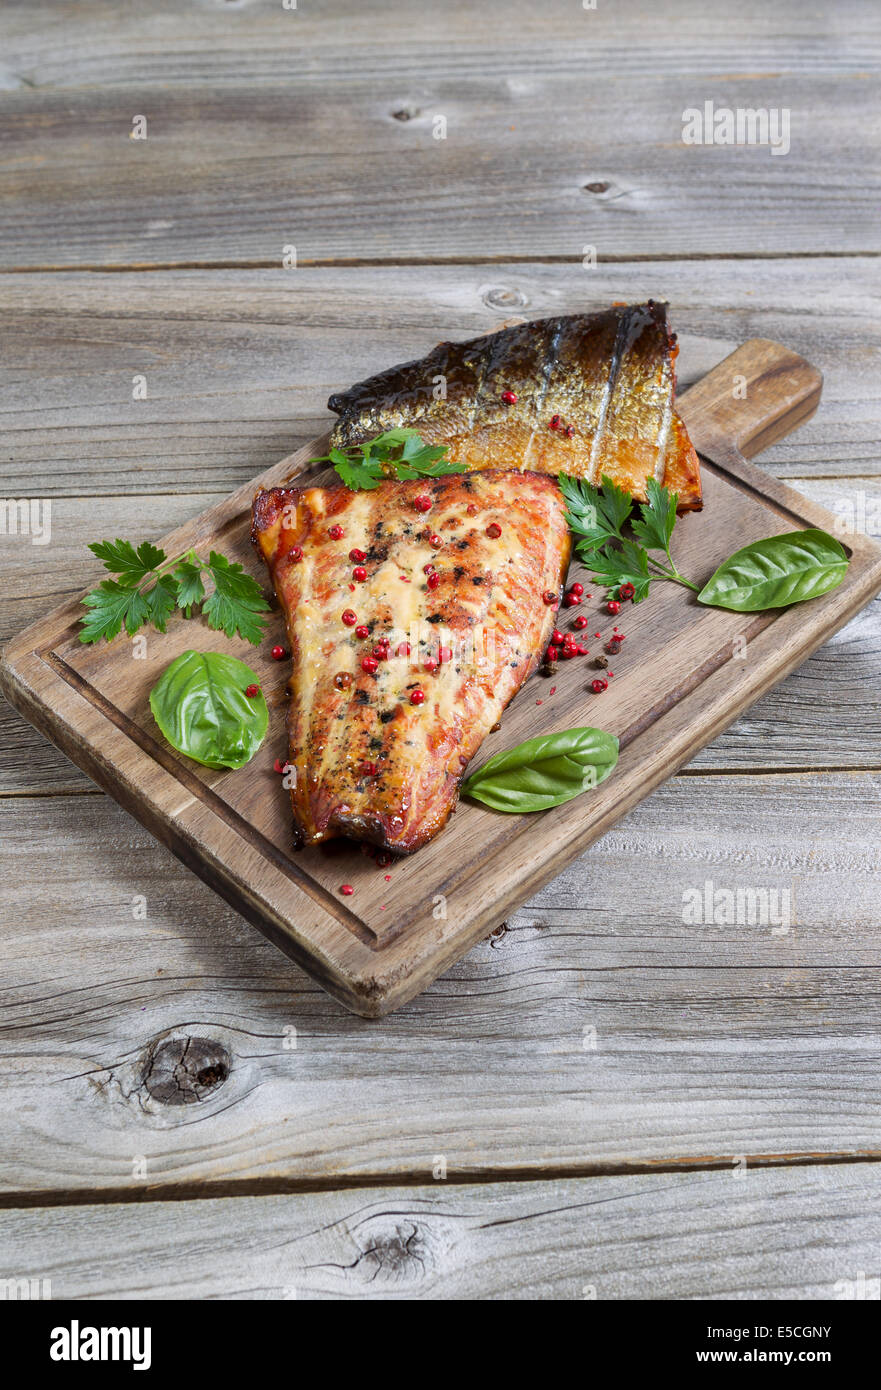 Vertical view of smoked salmon fillets, fresh out of cooker, with seasoning on serving board with rustic wood underneath - Stock Image